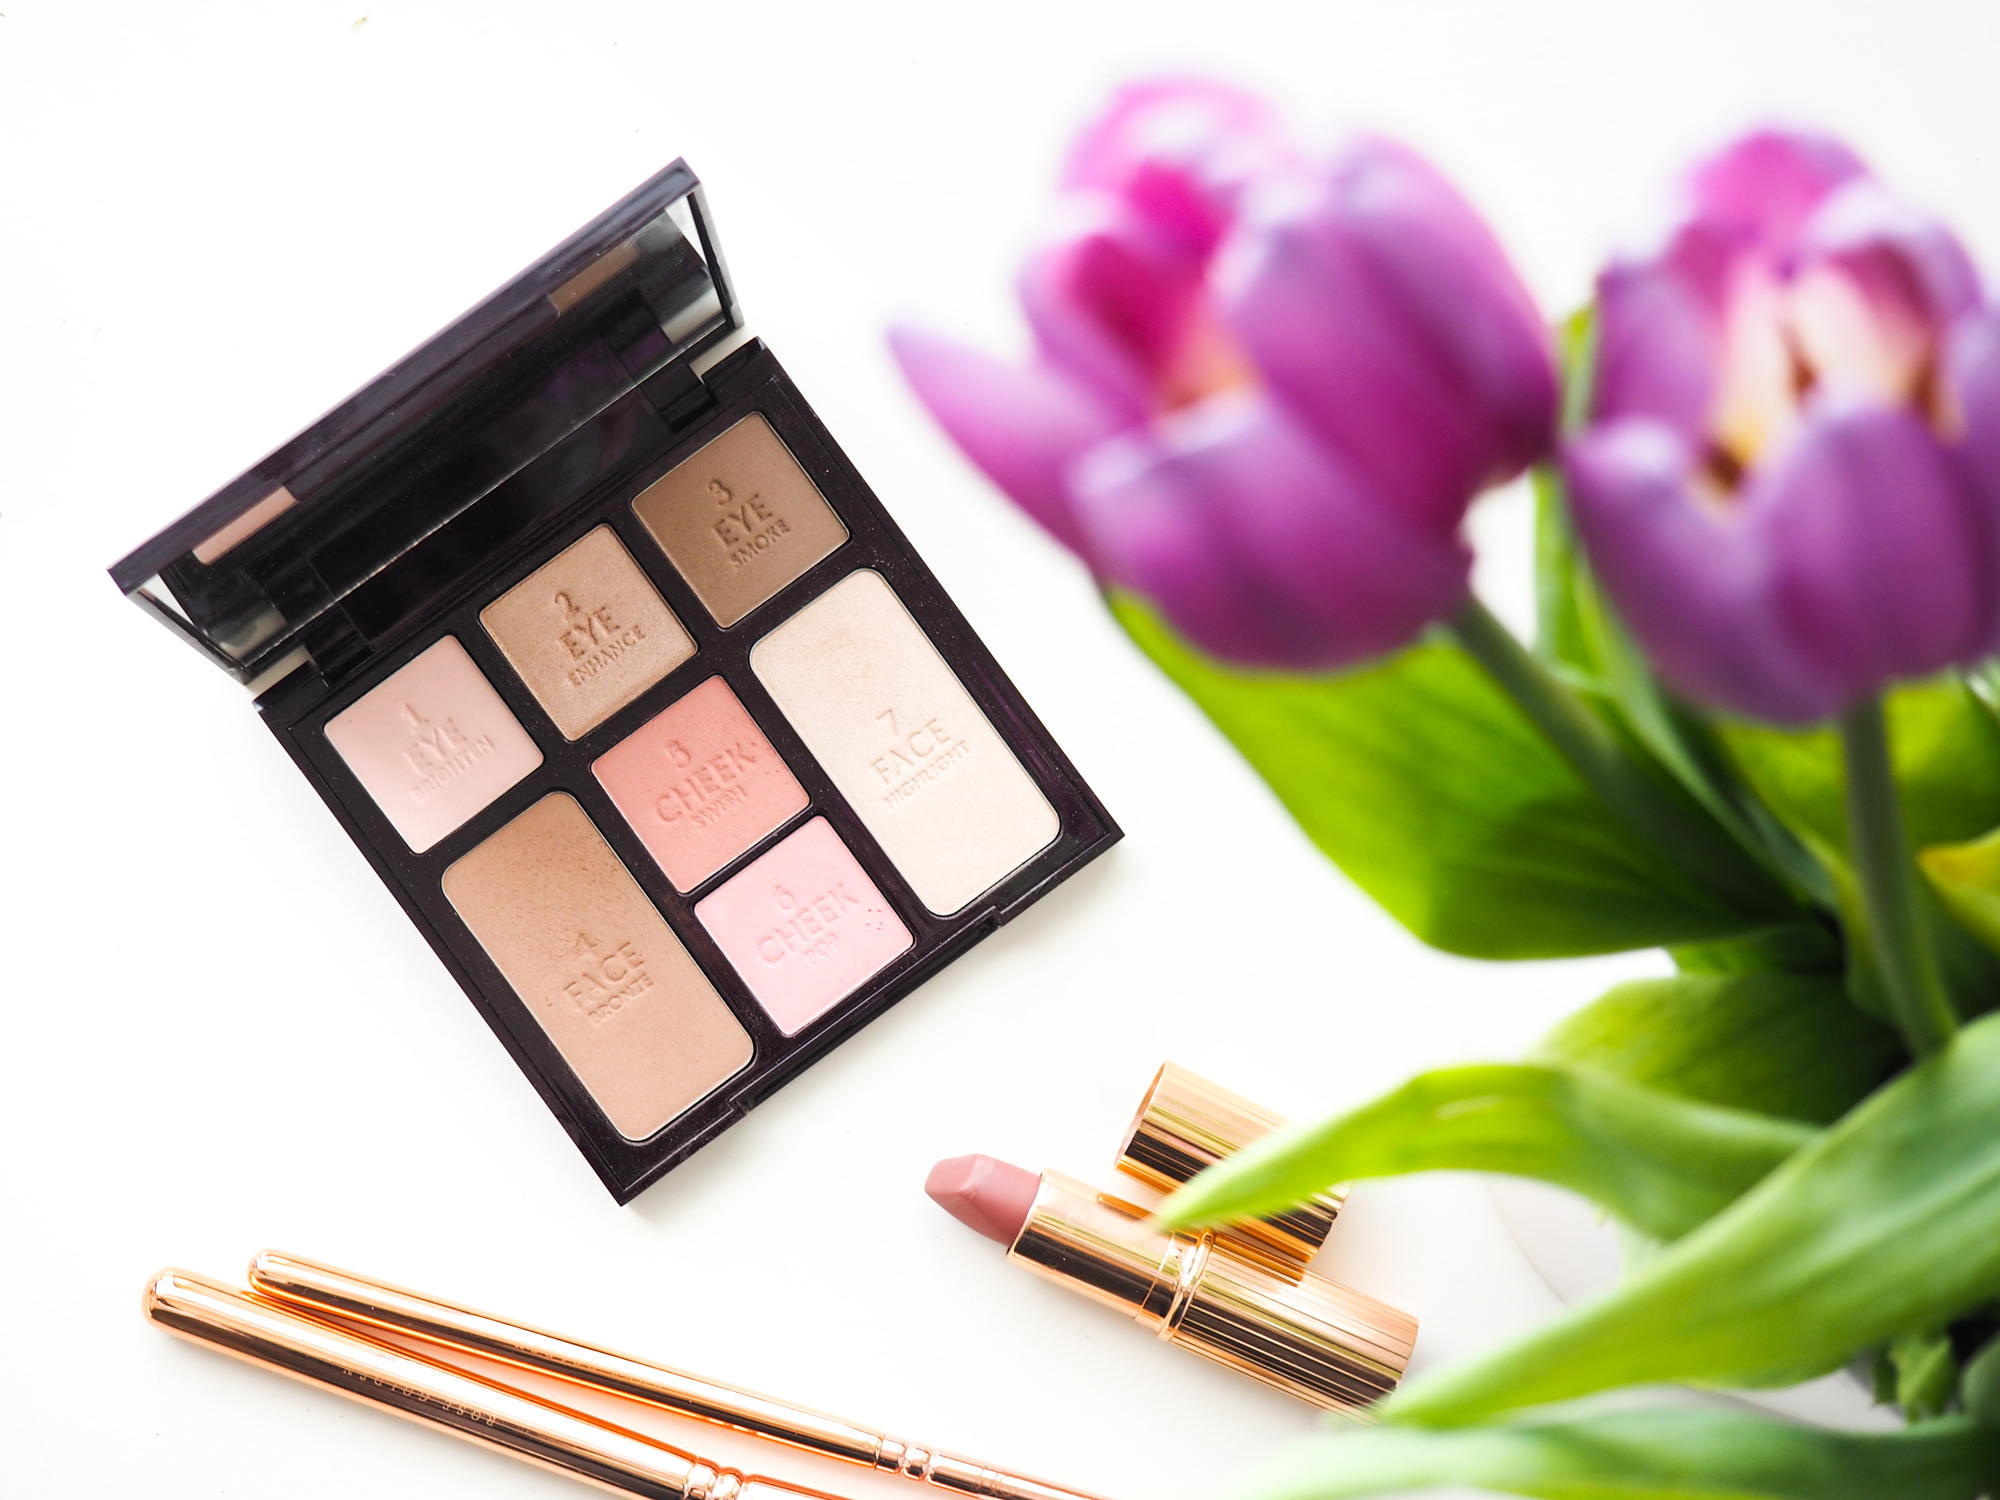 Charlotte Tilbury 5 Minute Face Instant Look Palette Review